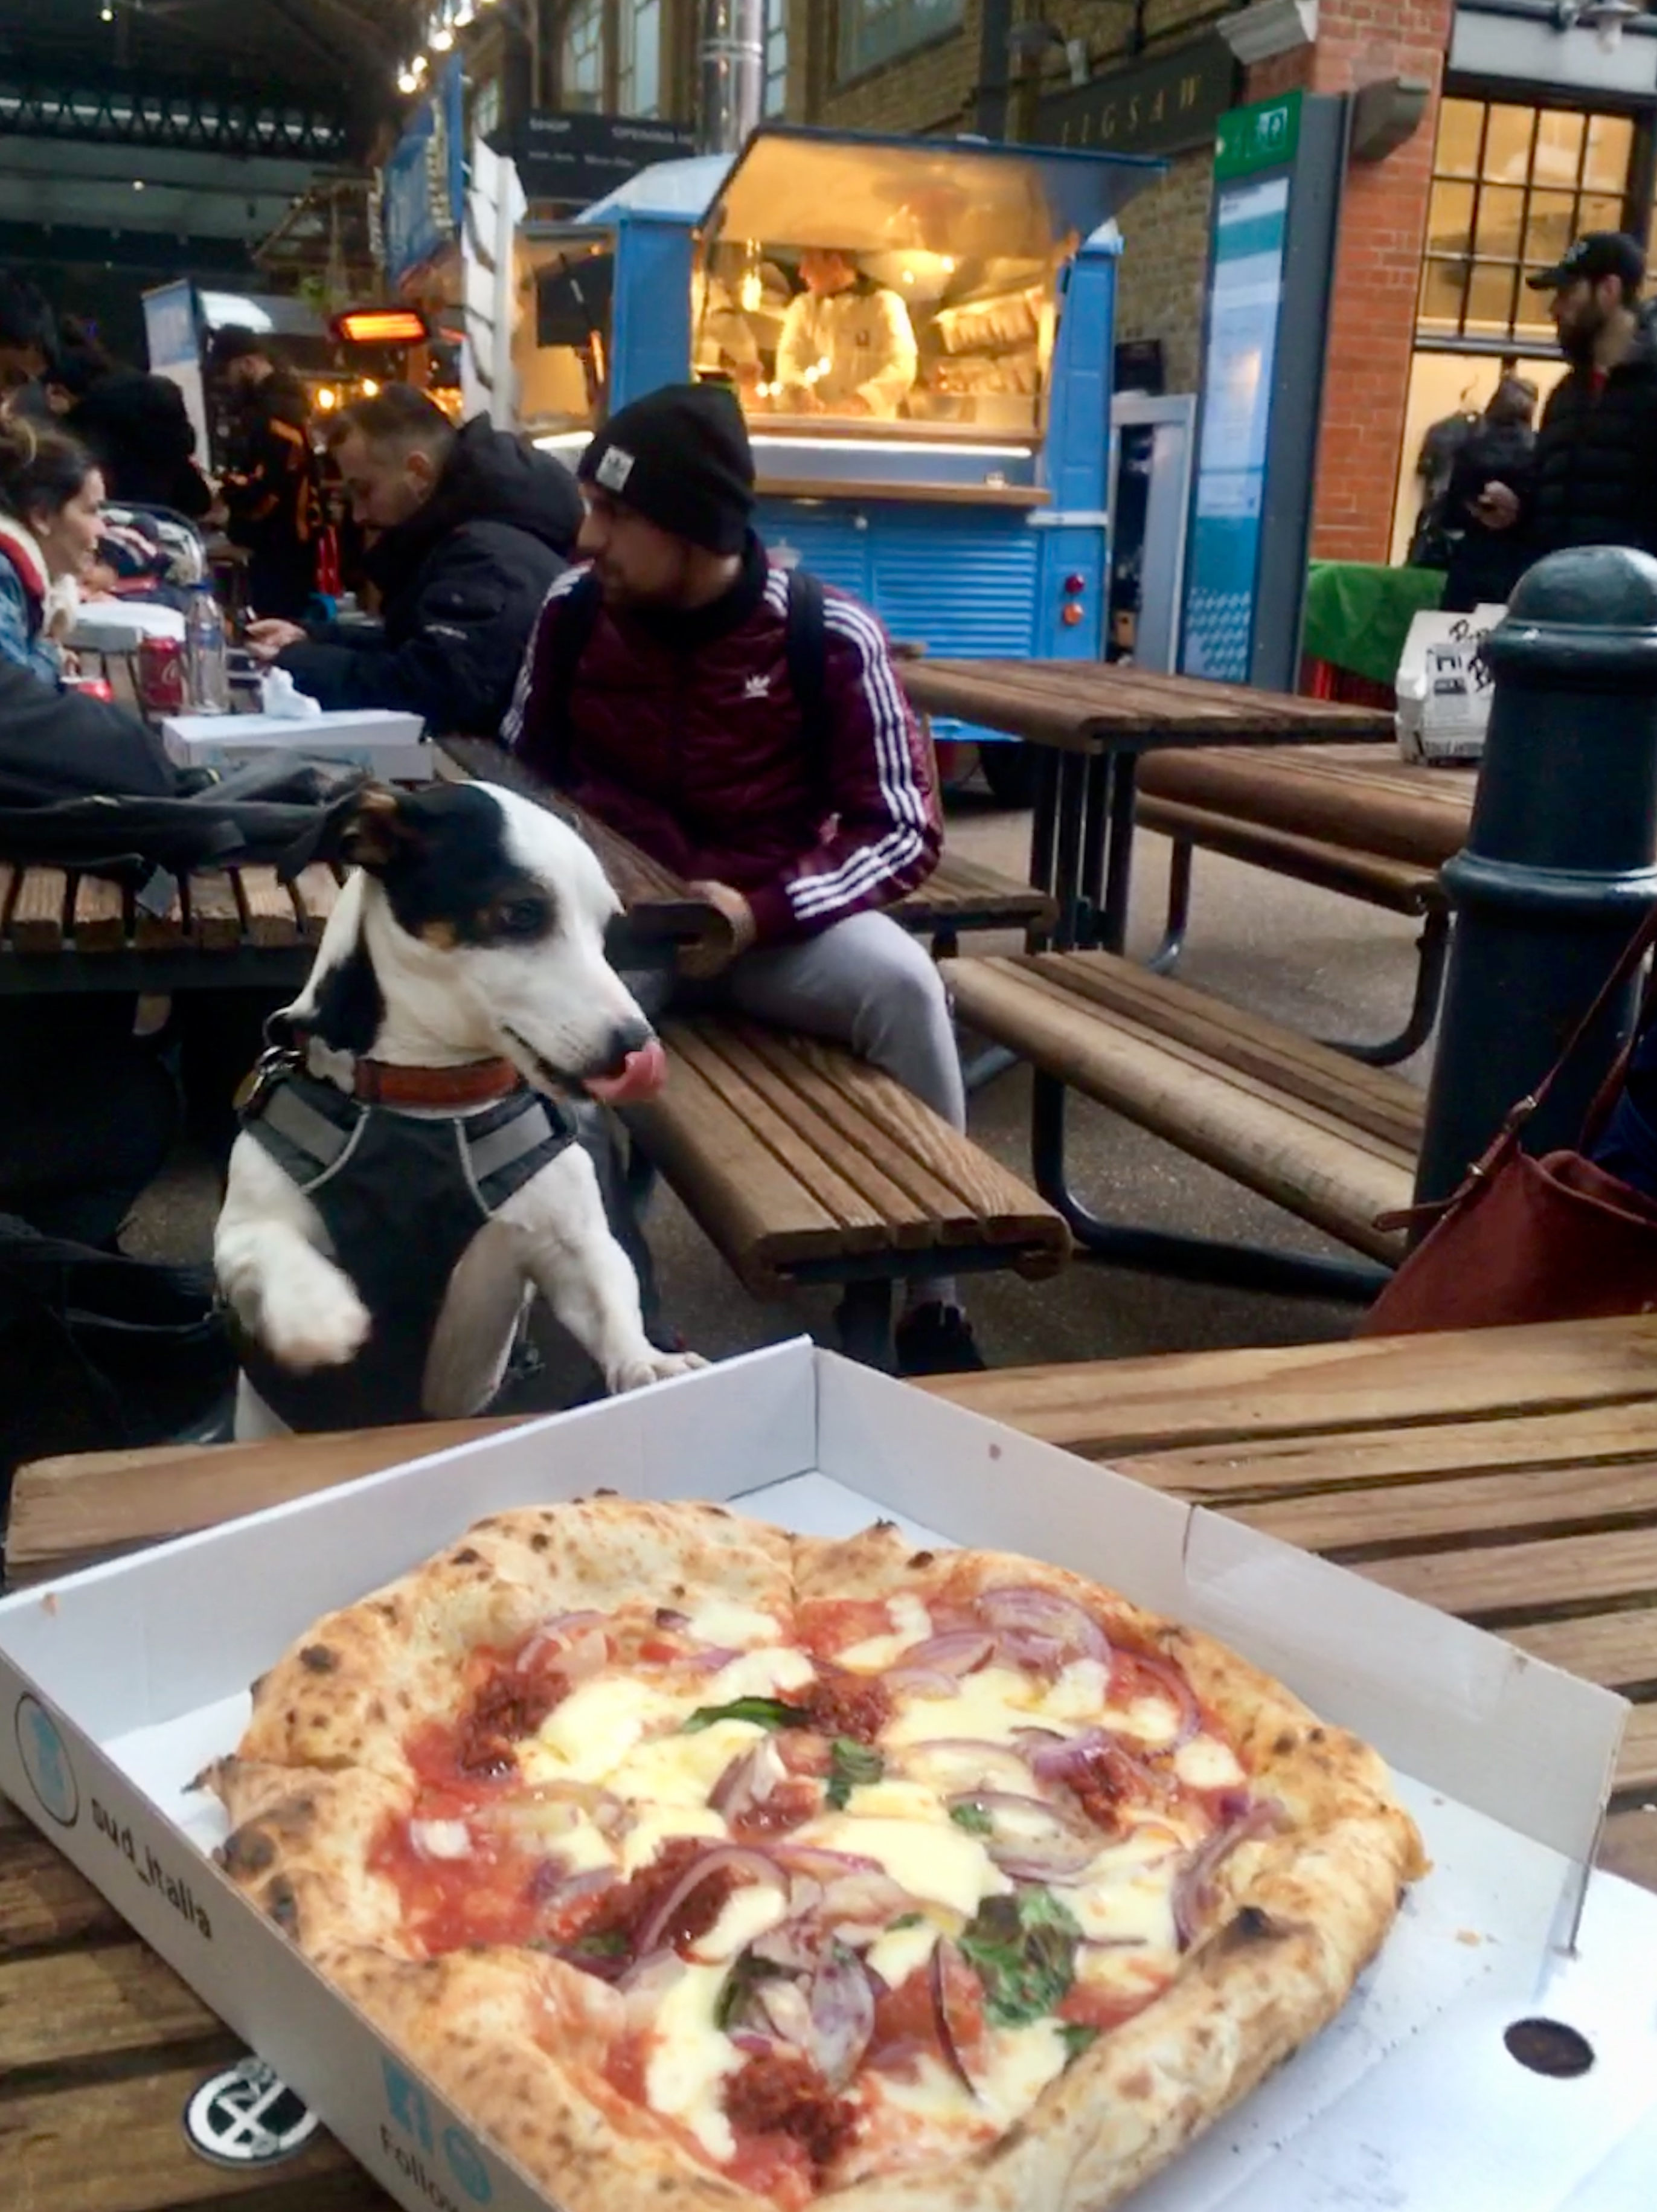 Dog licking its nose in front of a pizza